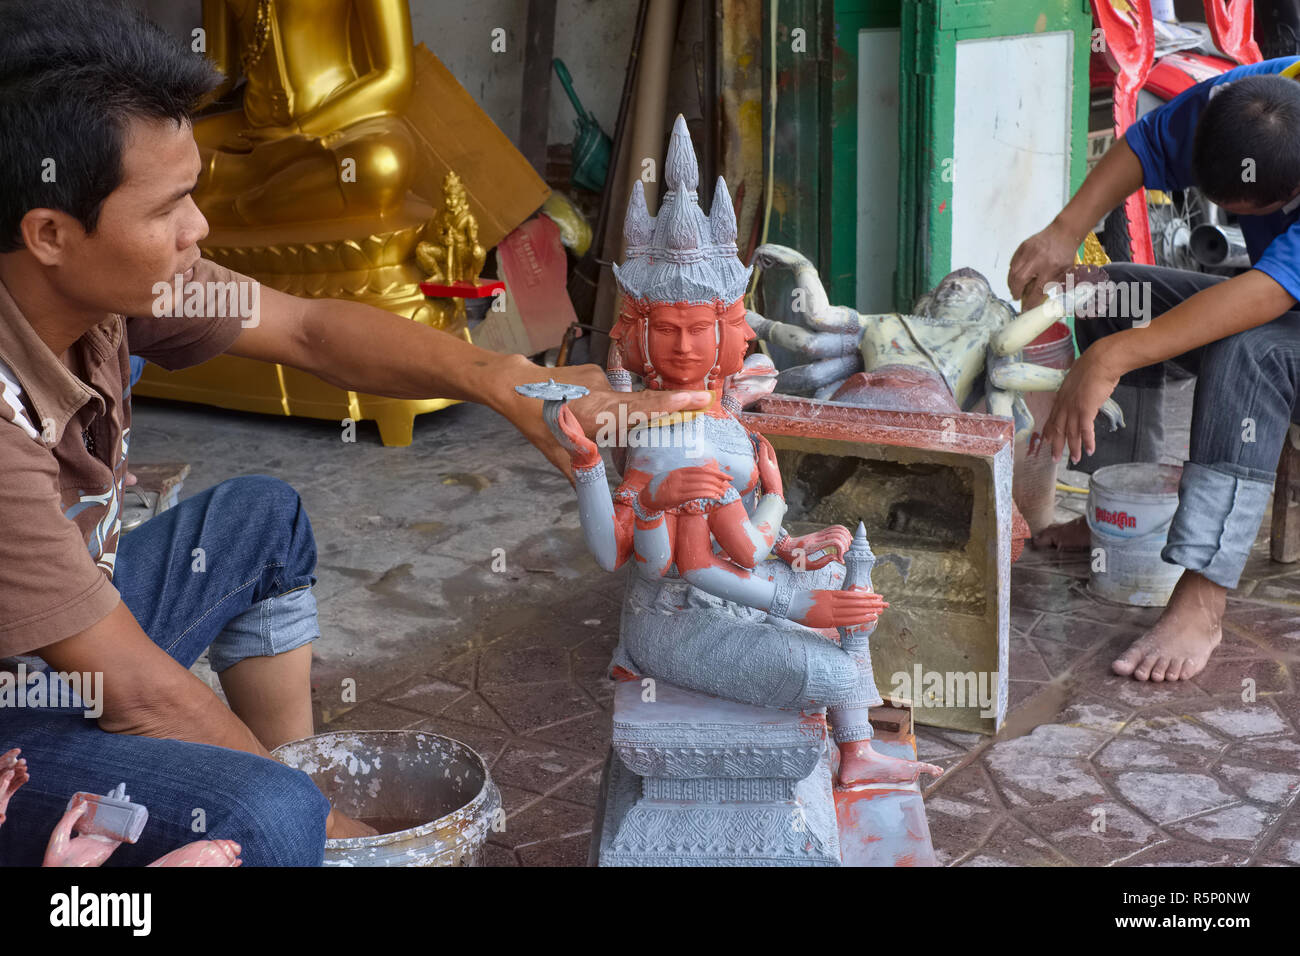 Manufacture of a figure of a four-faced Brahma, at a factory in Bamrung Muang Rd., Bangkok, Thailand, a street known for its Buddhist-themed factories - Stock Image